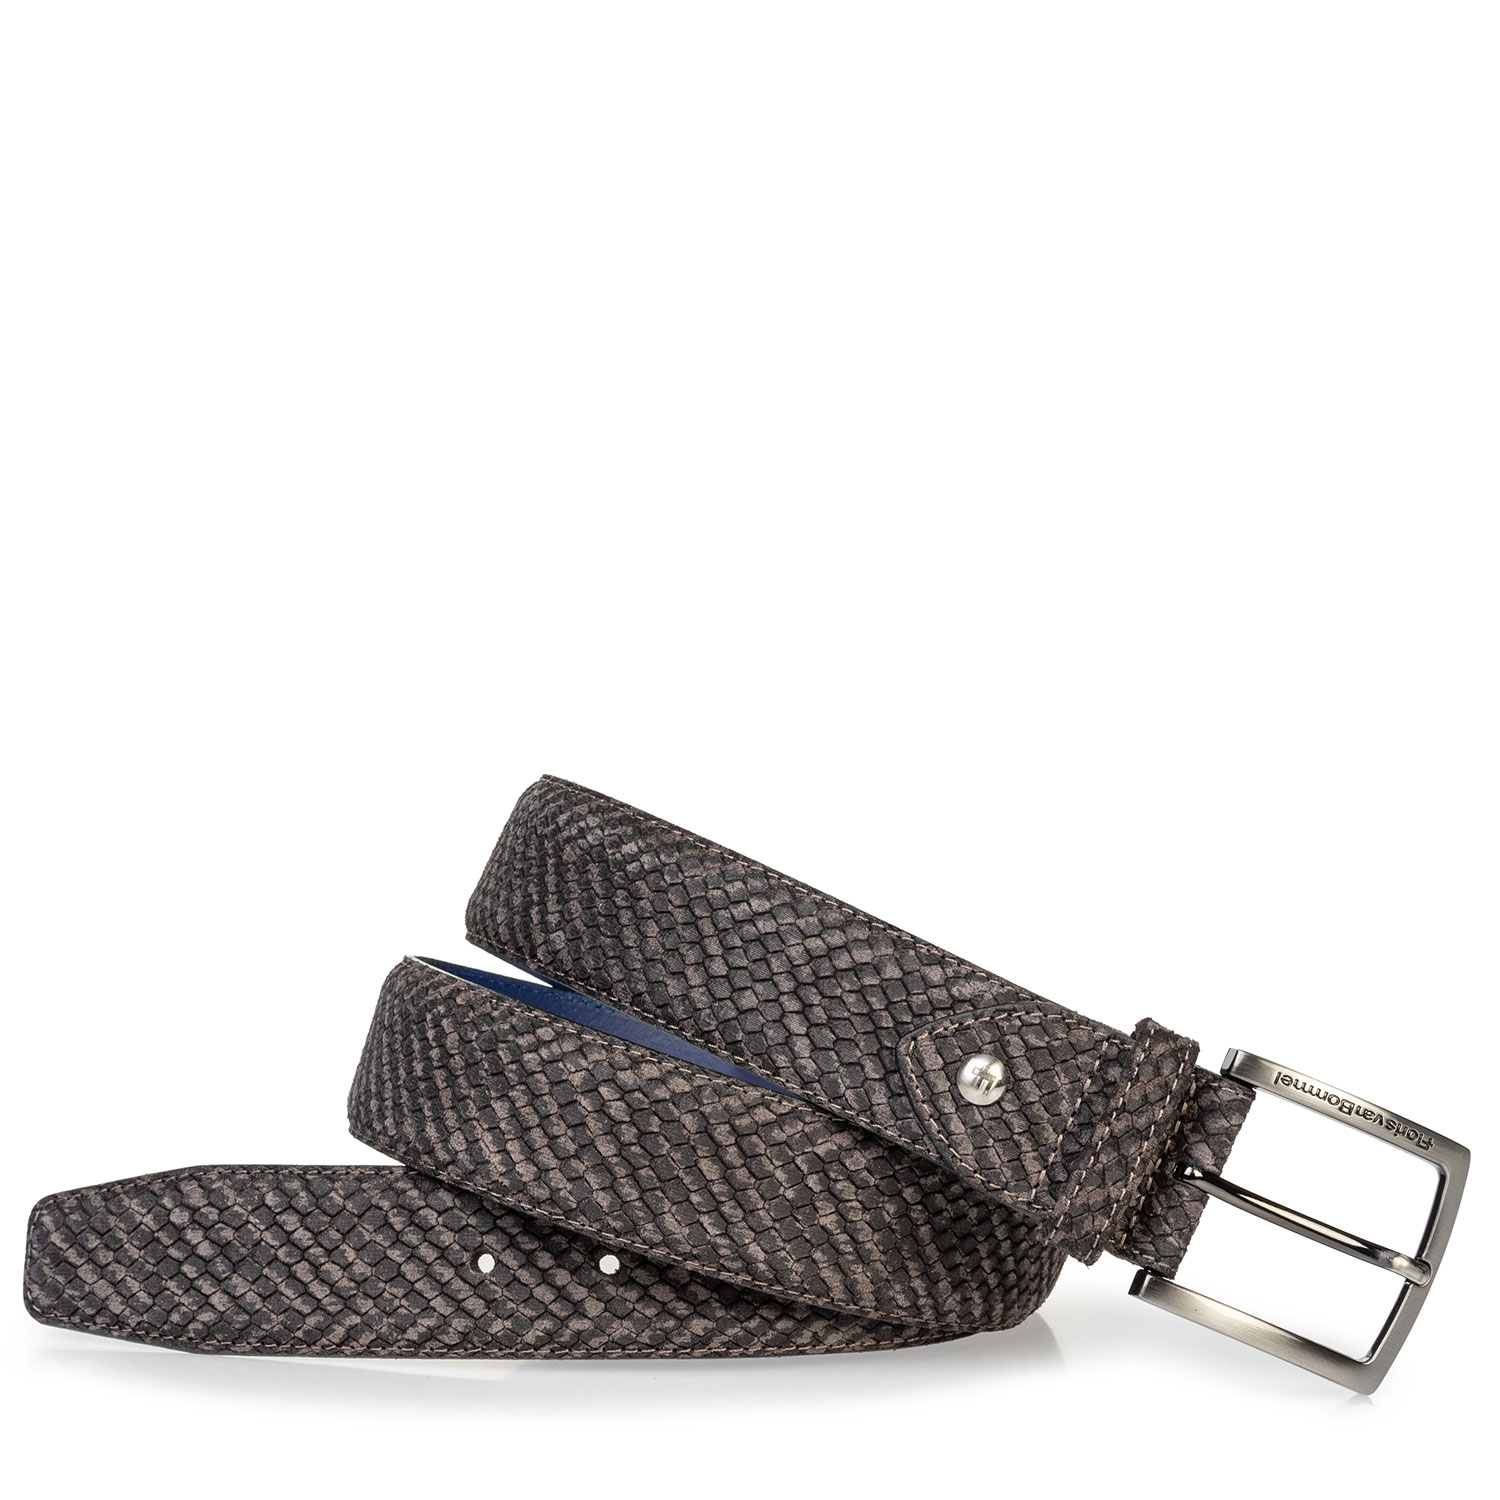 75204/13 - Suede leather belt grey with black print